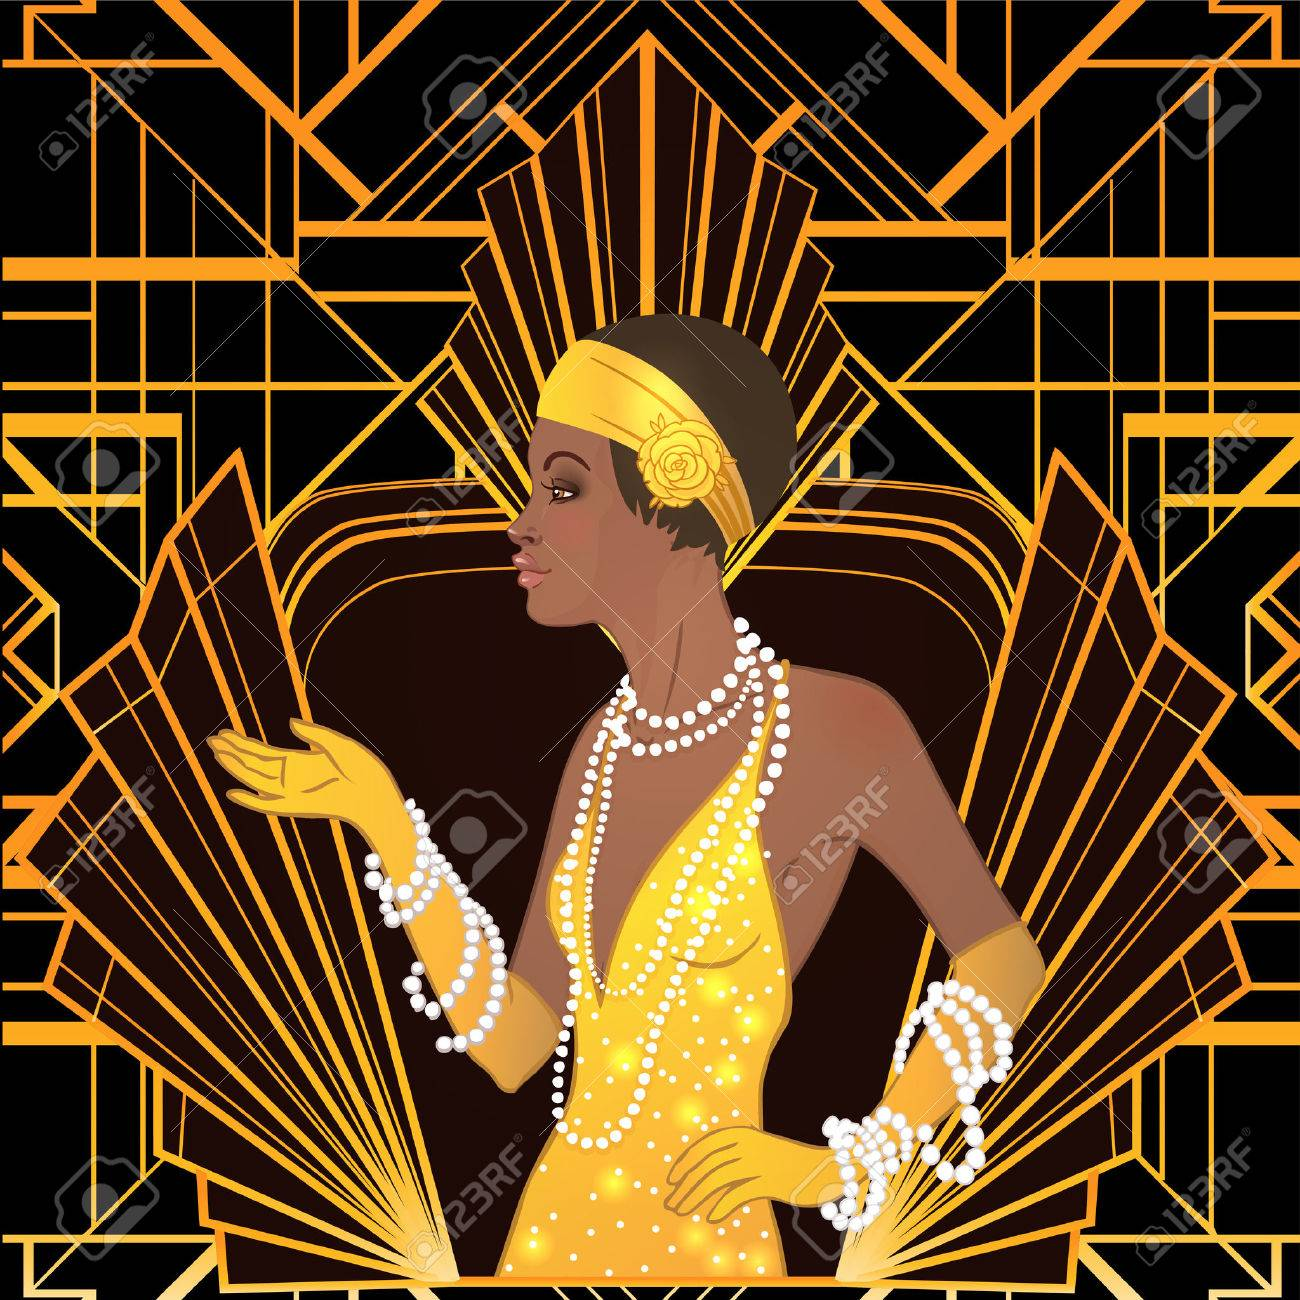 Retro fashion: glamour girl of twenties (African American woman). Vector illustration. Flapper 20's style. Vintage party invitation design template. Fancy black lady. - 78749789